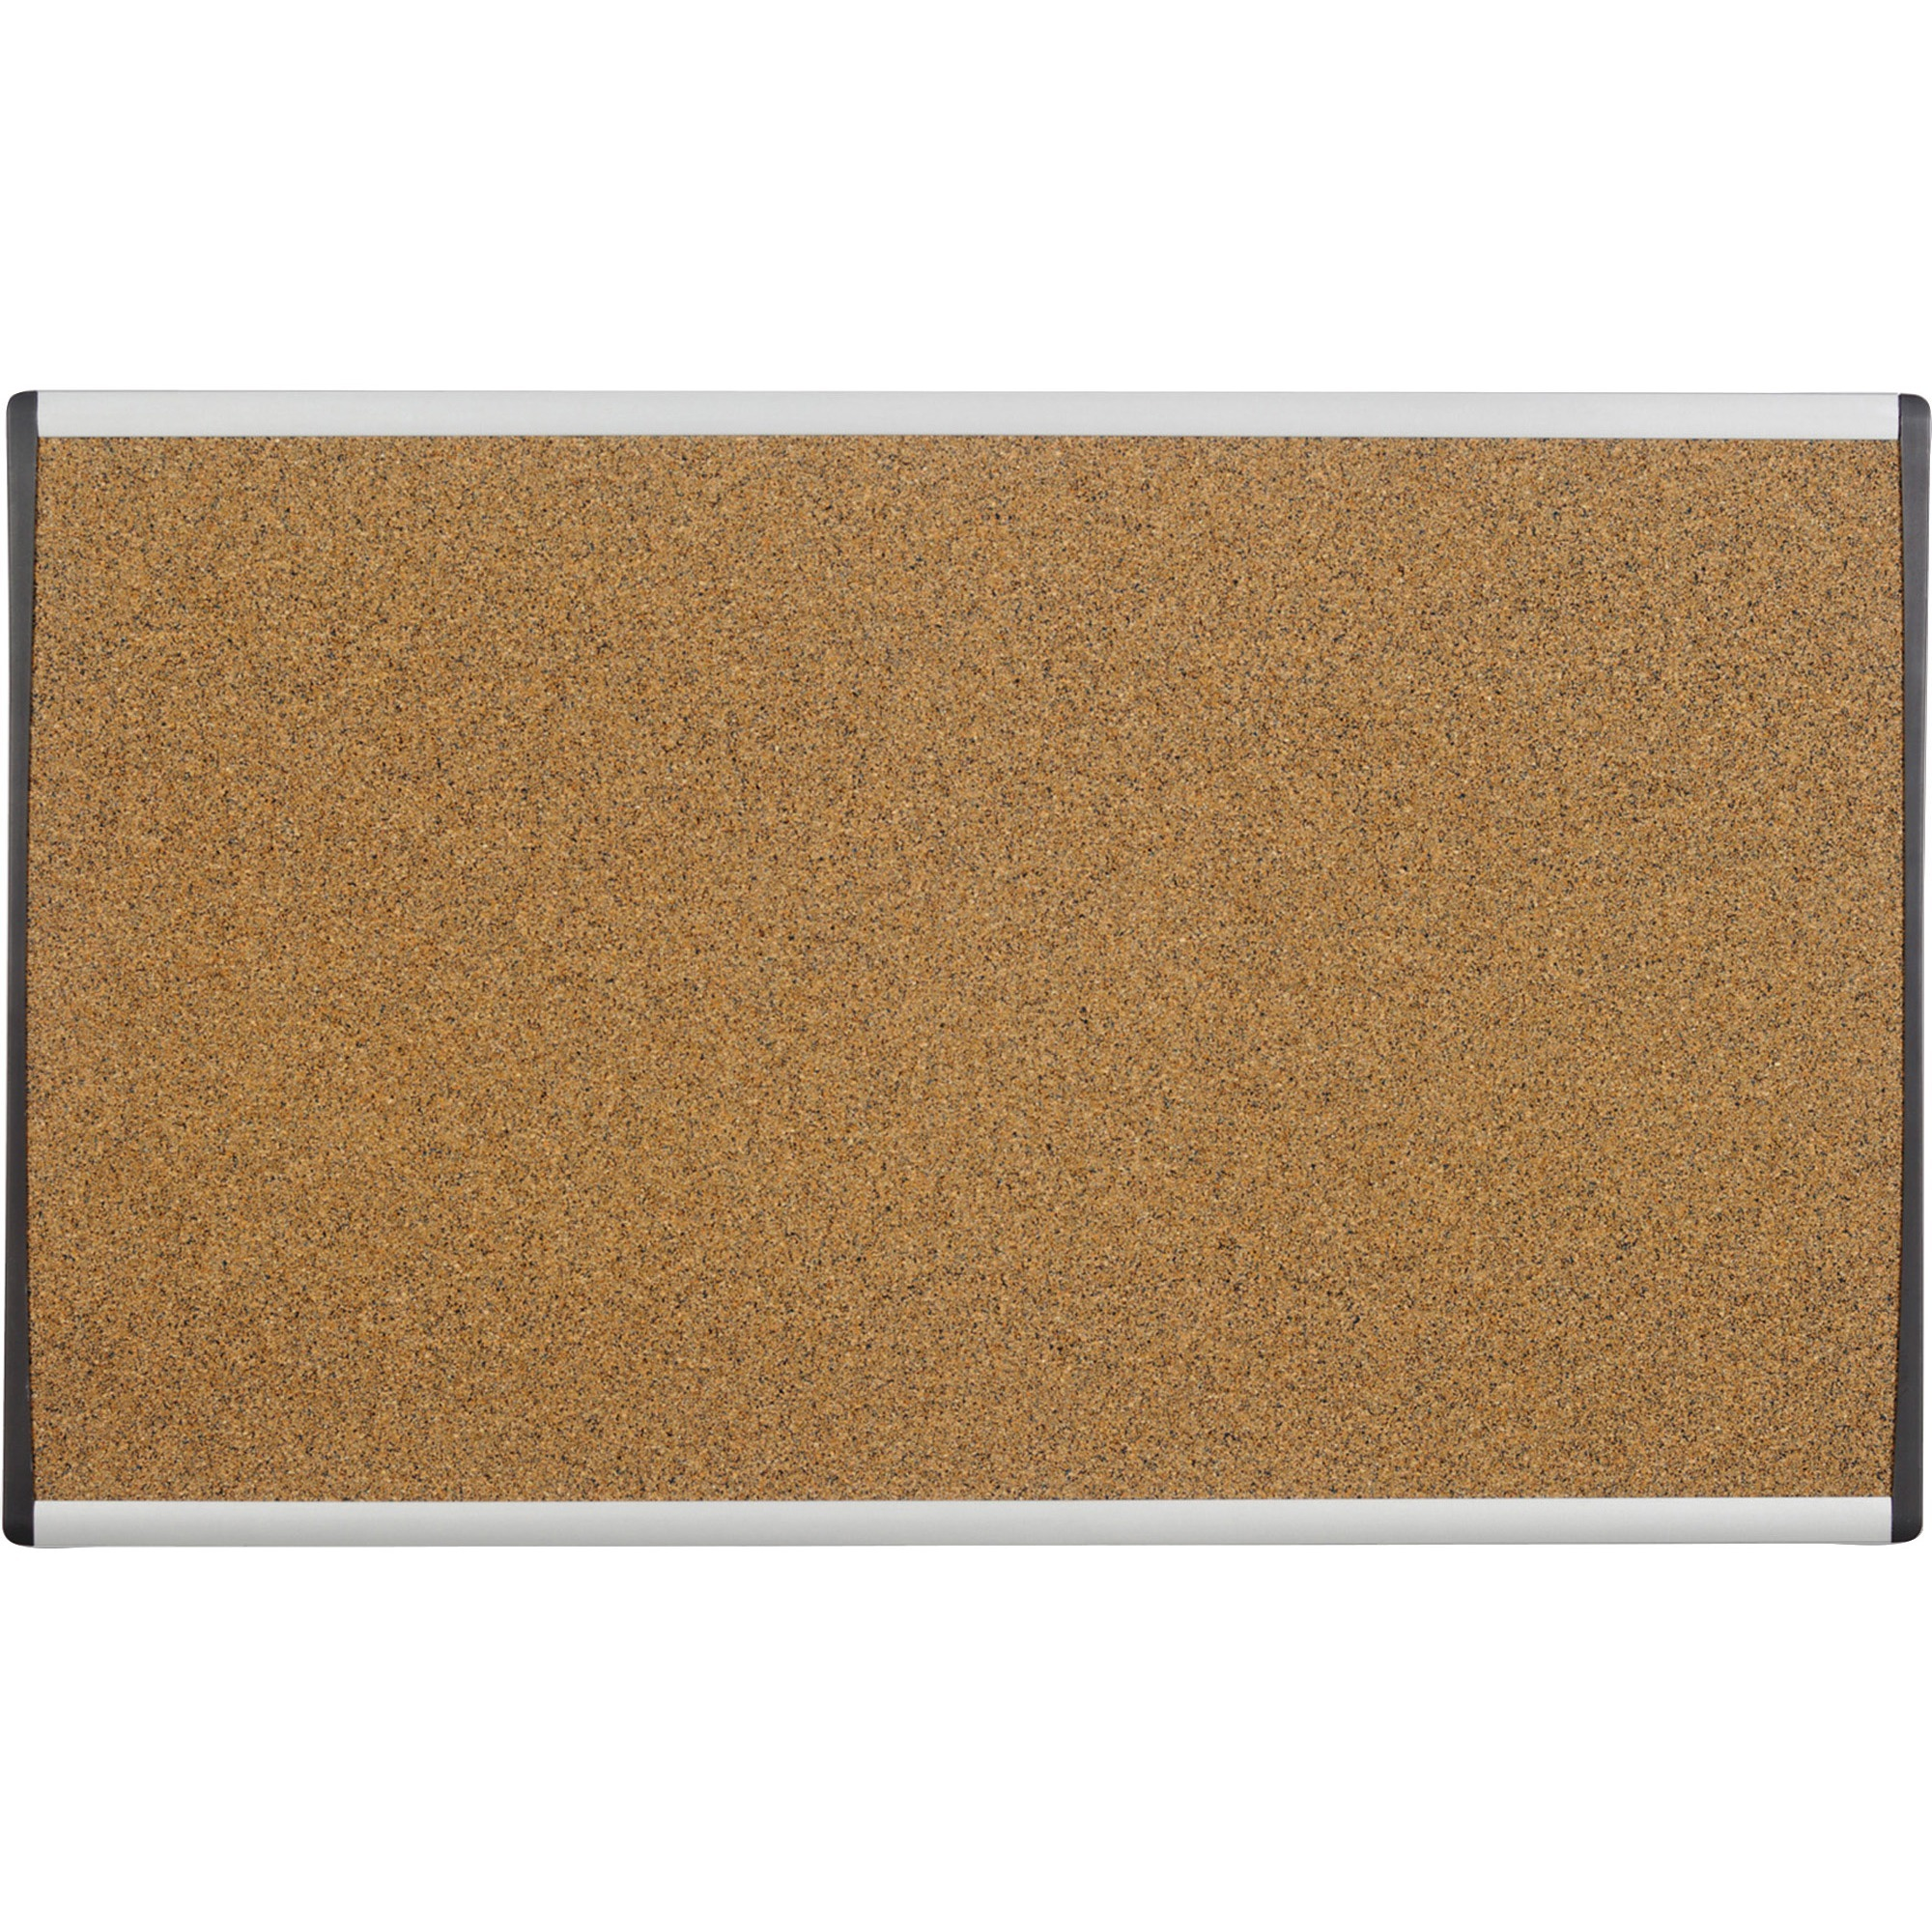 Acco Brands Corporation Quartet® Arc Cubicle Bulletin Board - 18 Height X 30 Width - Brown Natural Cork Surface - Silver Aluminum Frame - 1 / Each